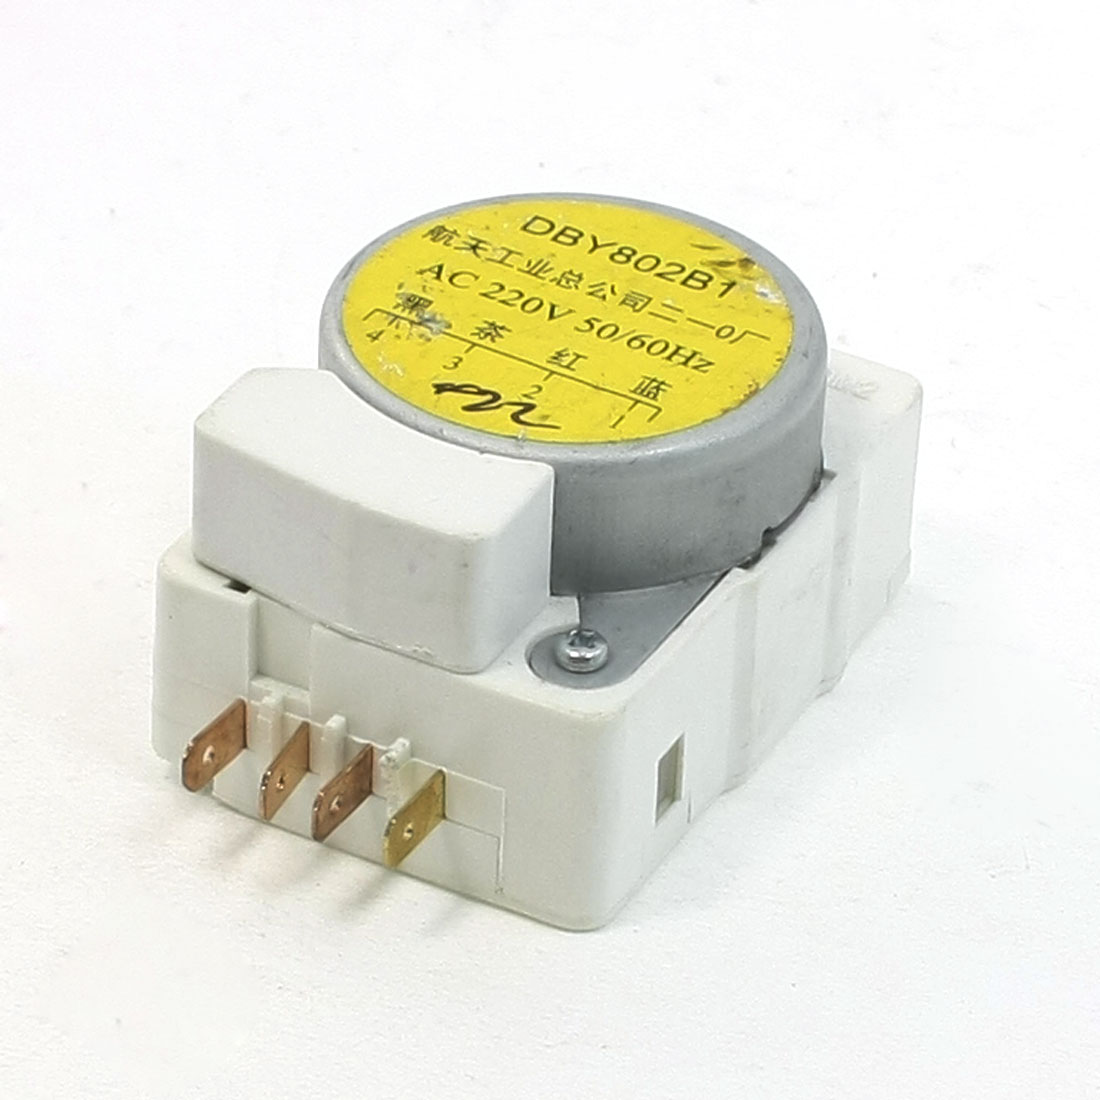 Replacing AC 220V 50/60Hz DBY Type Fridge Refrigerator Defrost Timer